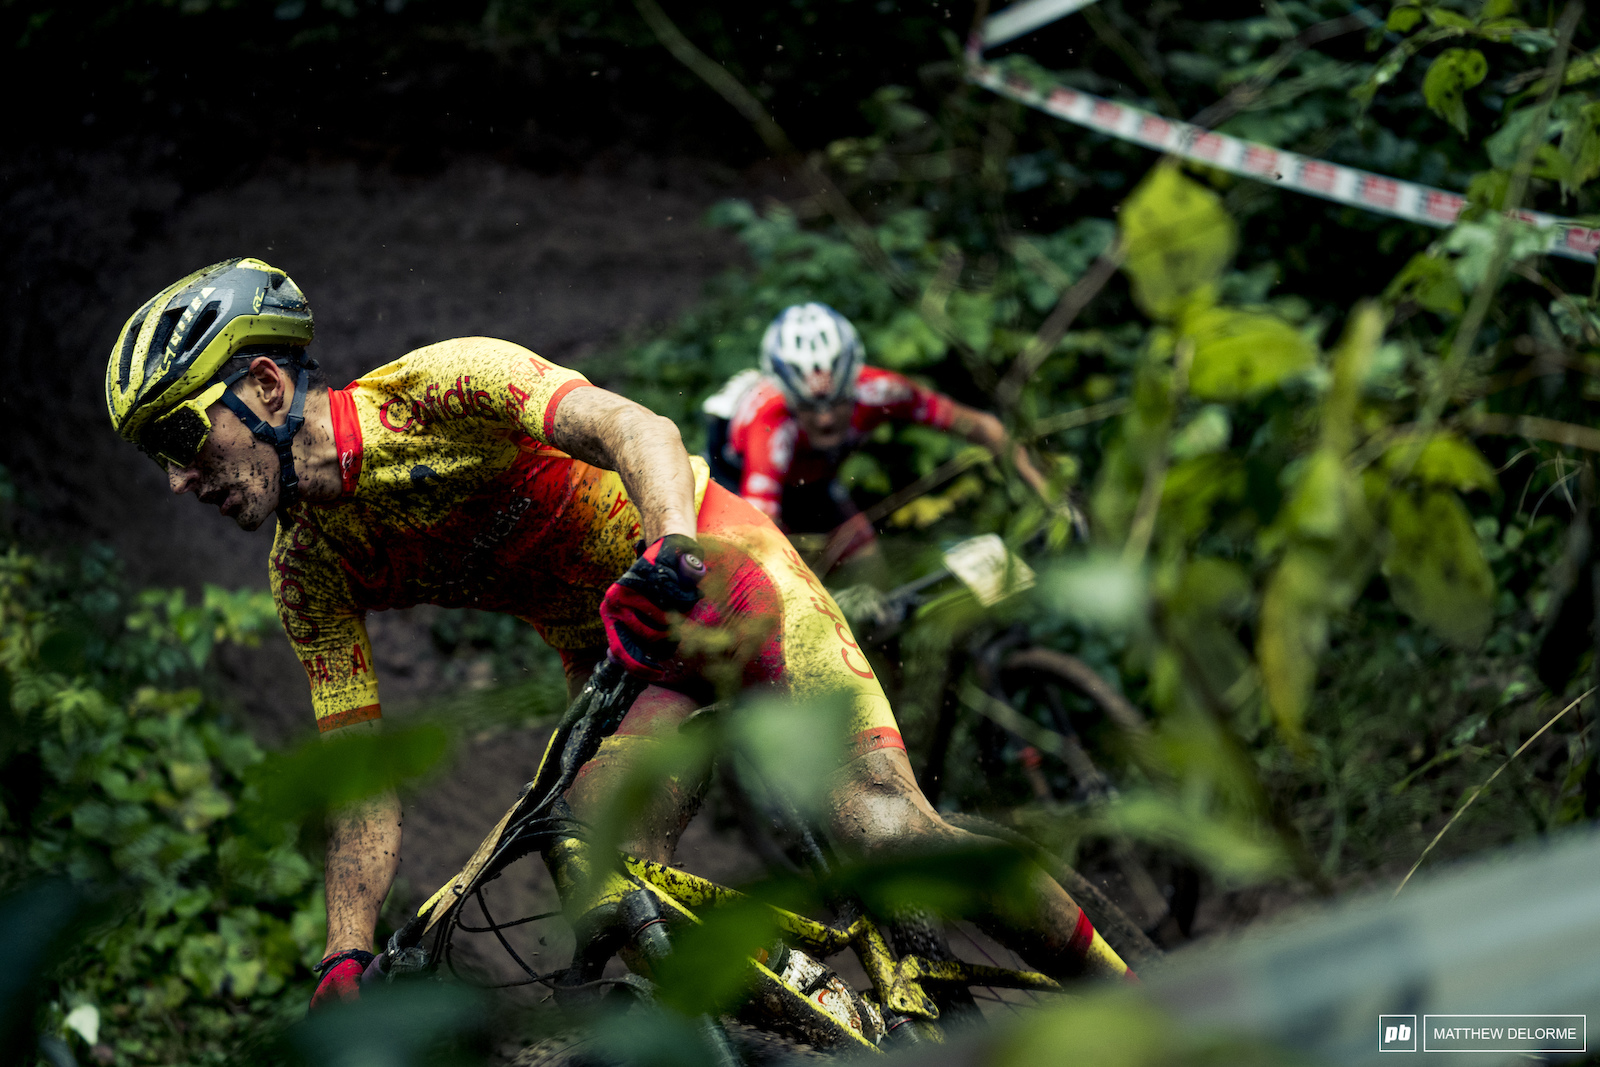 Racing got underway today with a sloppy team relay then the E MTB worlds.